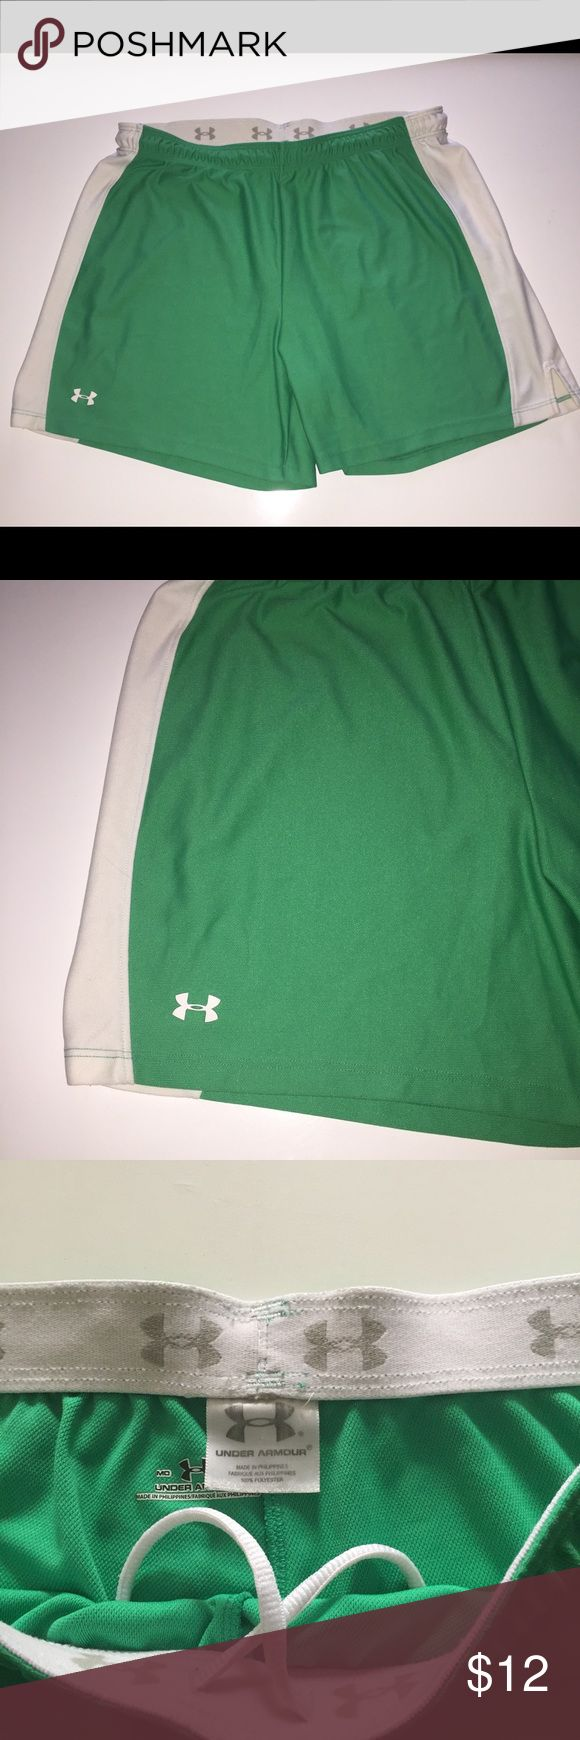 """Under Armour Athletic green shorts M loose fit Womens Under Armour Athletic Shorts  Fit: Loose  Color: Green and White  Size: Medium  5"""" inseam  elastic waist with drawstring  14"""" length  Nice clean condition, no flaws  Non smoking home Under Armour Shorts"""